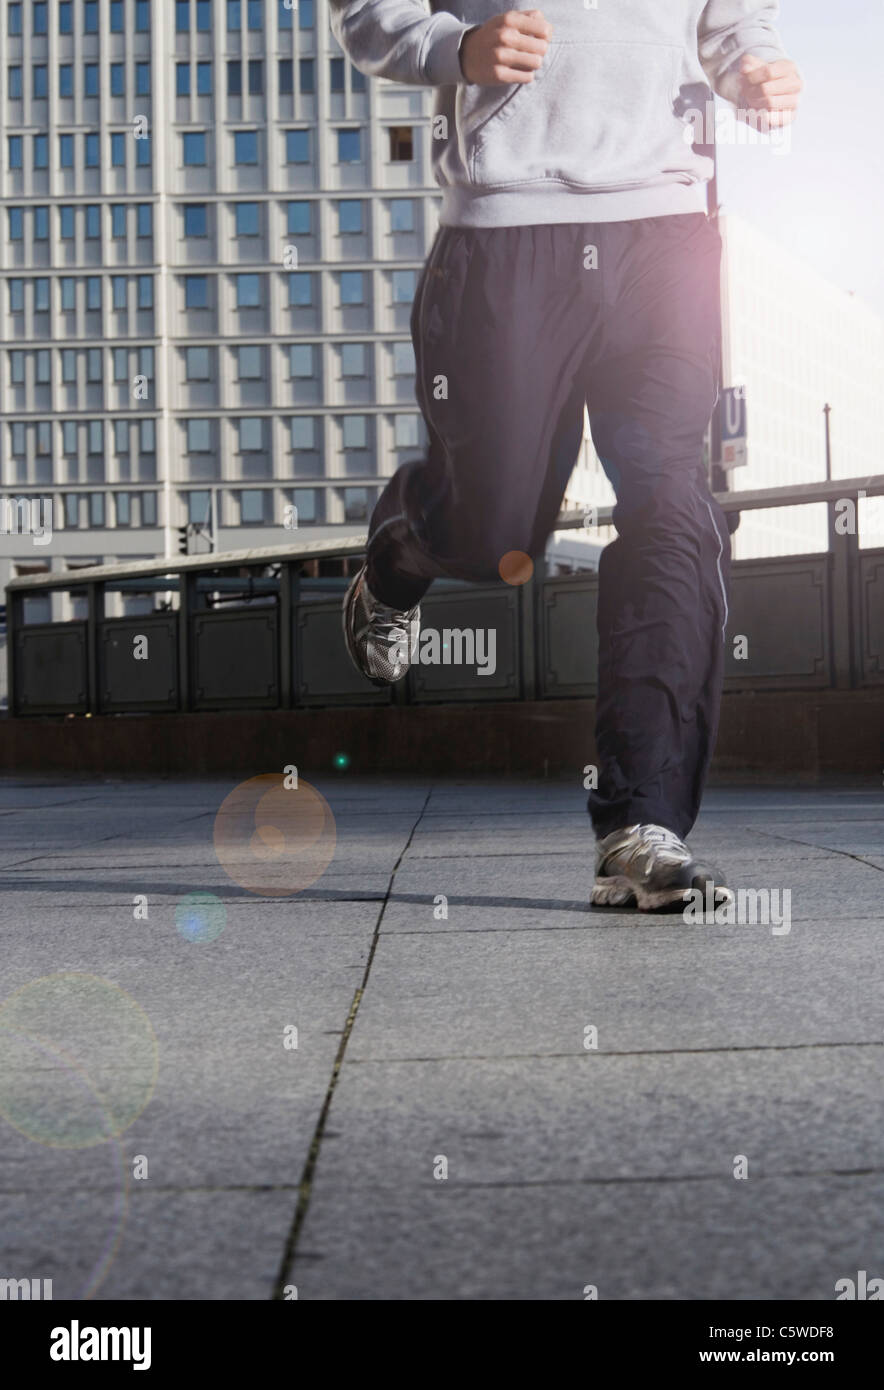 Germany, Berlin, Person jogging on street, skyscrapers in background, low section - Stock Image